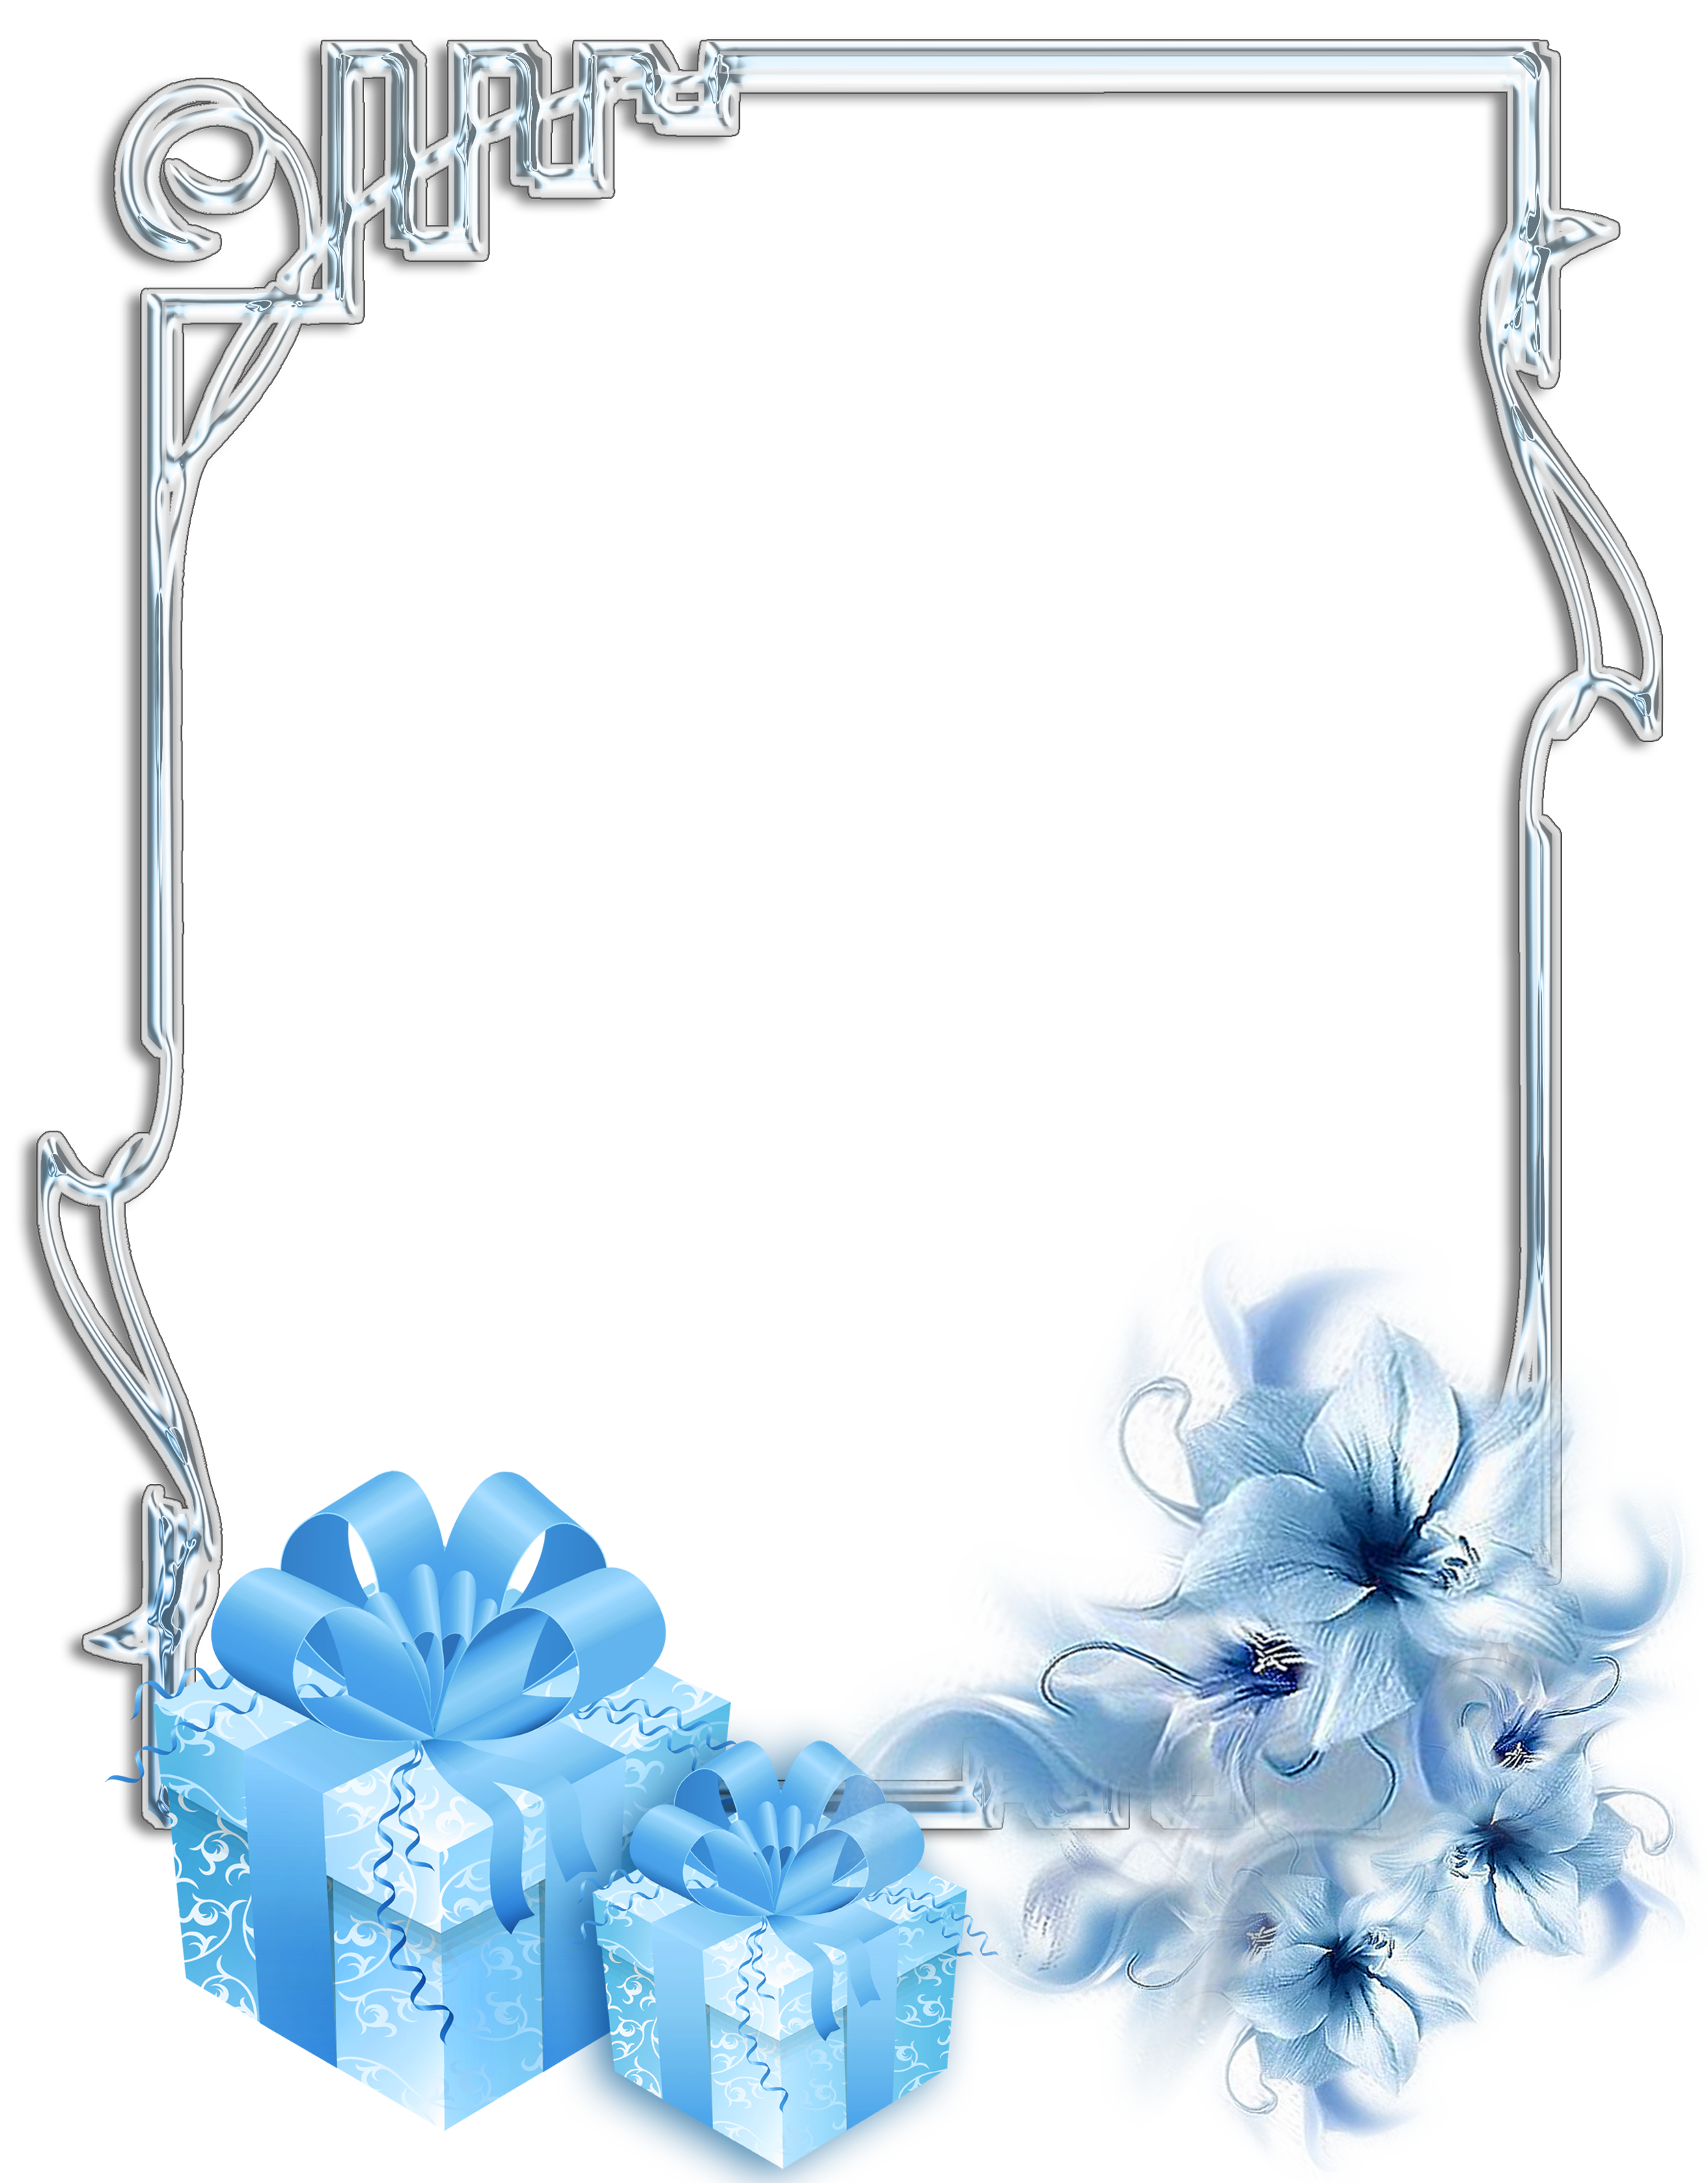 Silver bells flower clipart graphic download Large Transparent Christmas Silver Photo Frame with Blue Gifts and ... graphic download